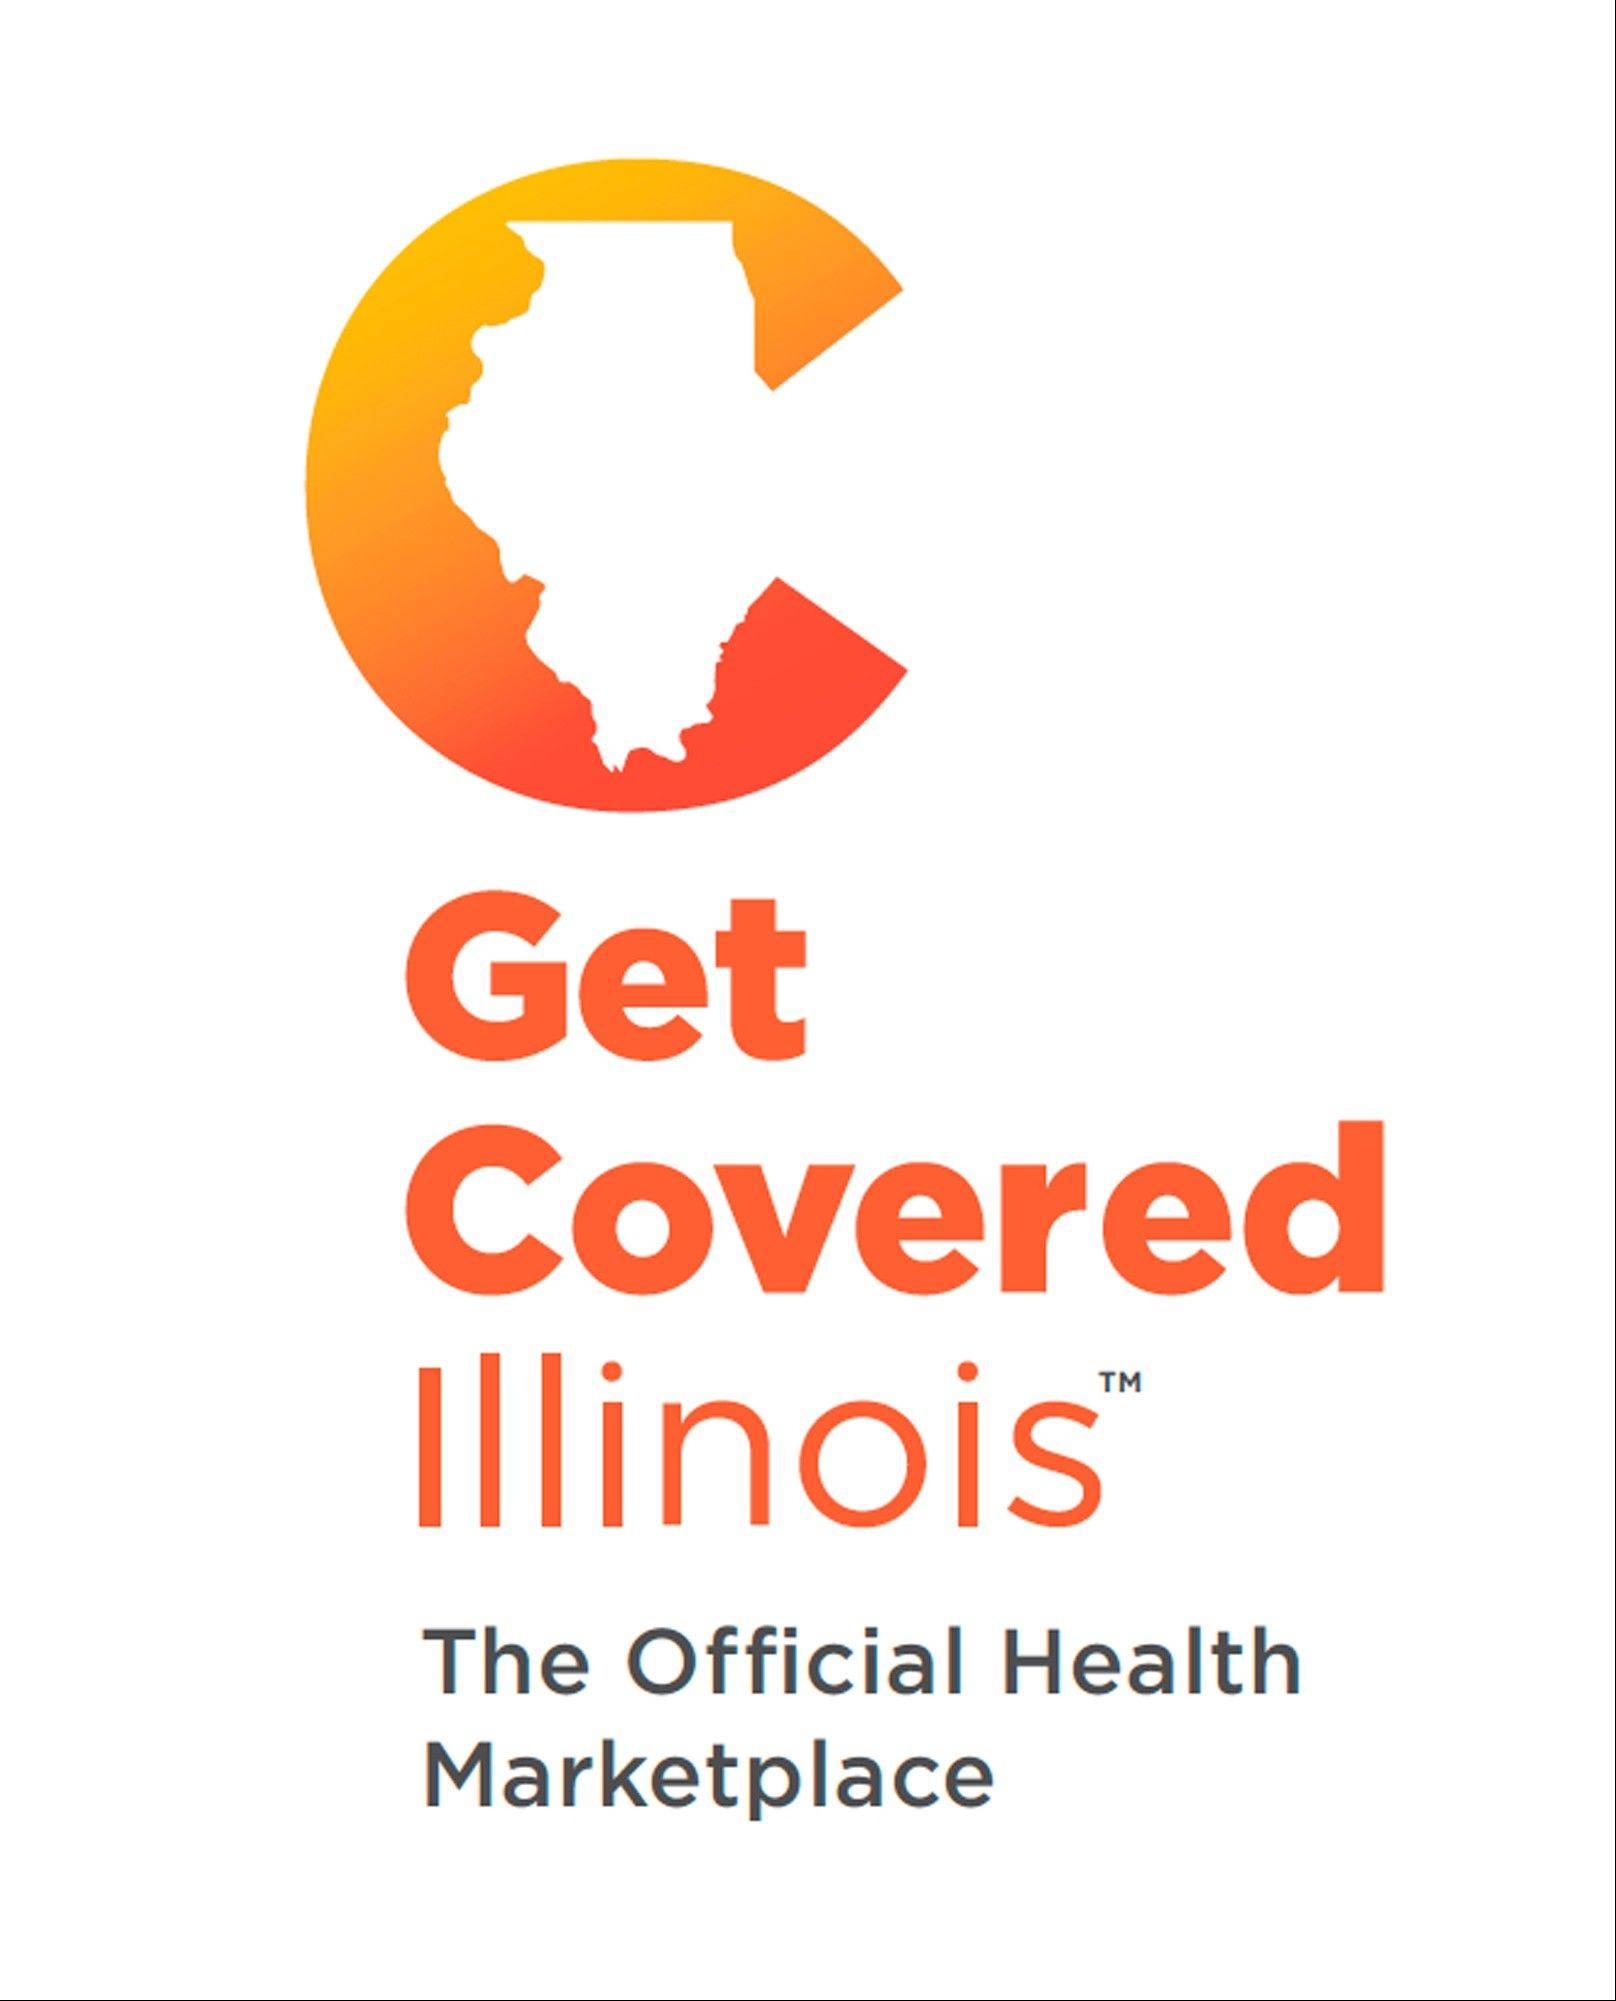 Illinois officials say anyone who believes they were referred to Medicaid by mistake should start again at the Get Covered Illinois online screening tool.